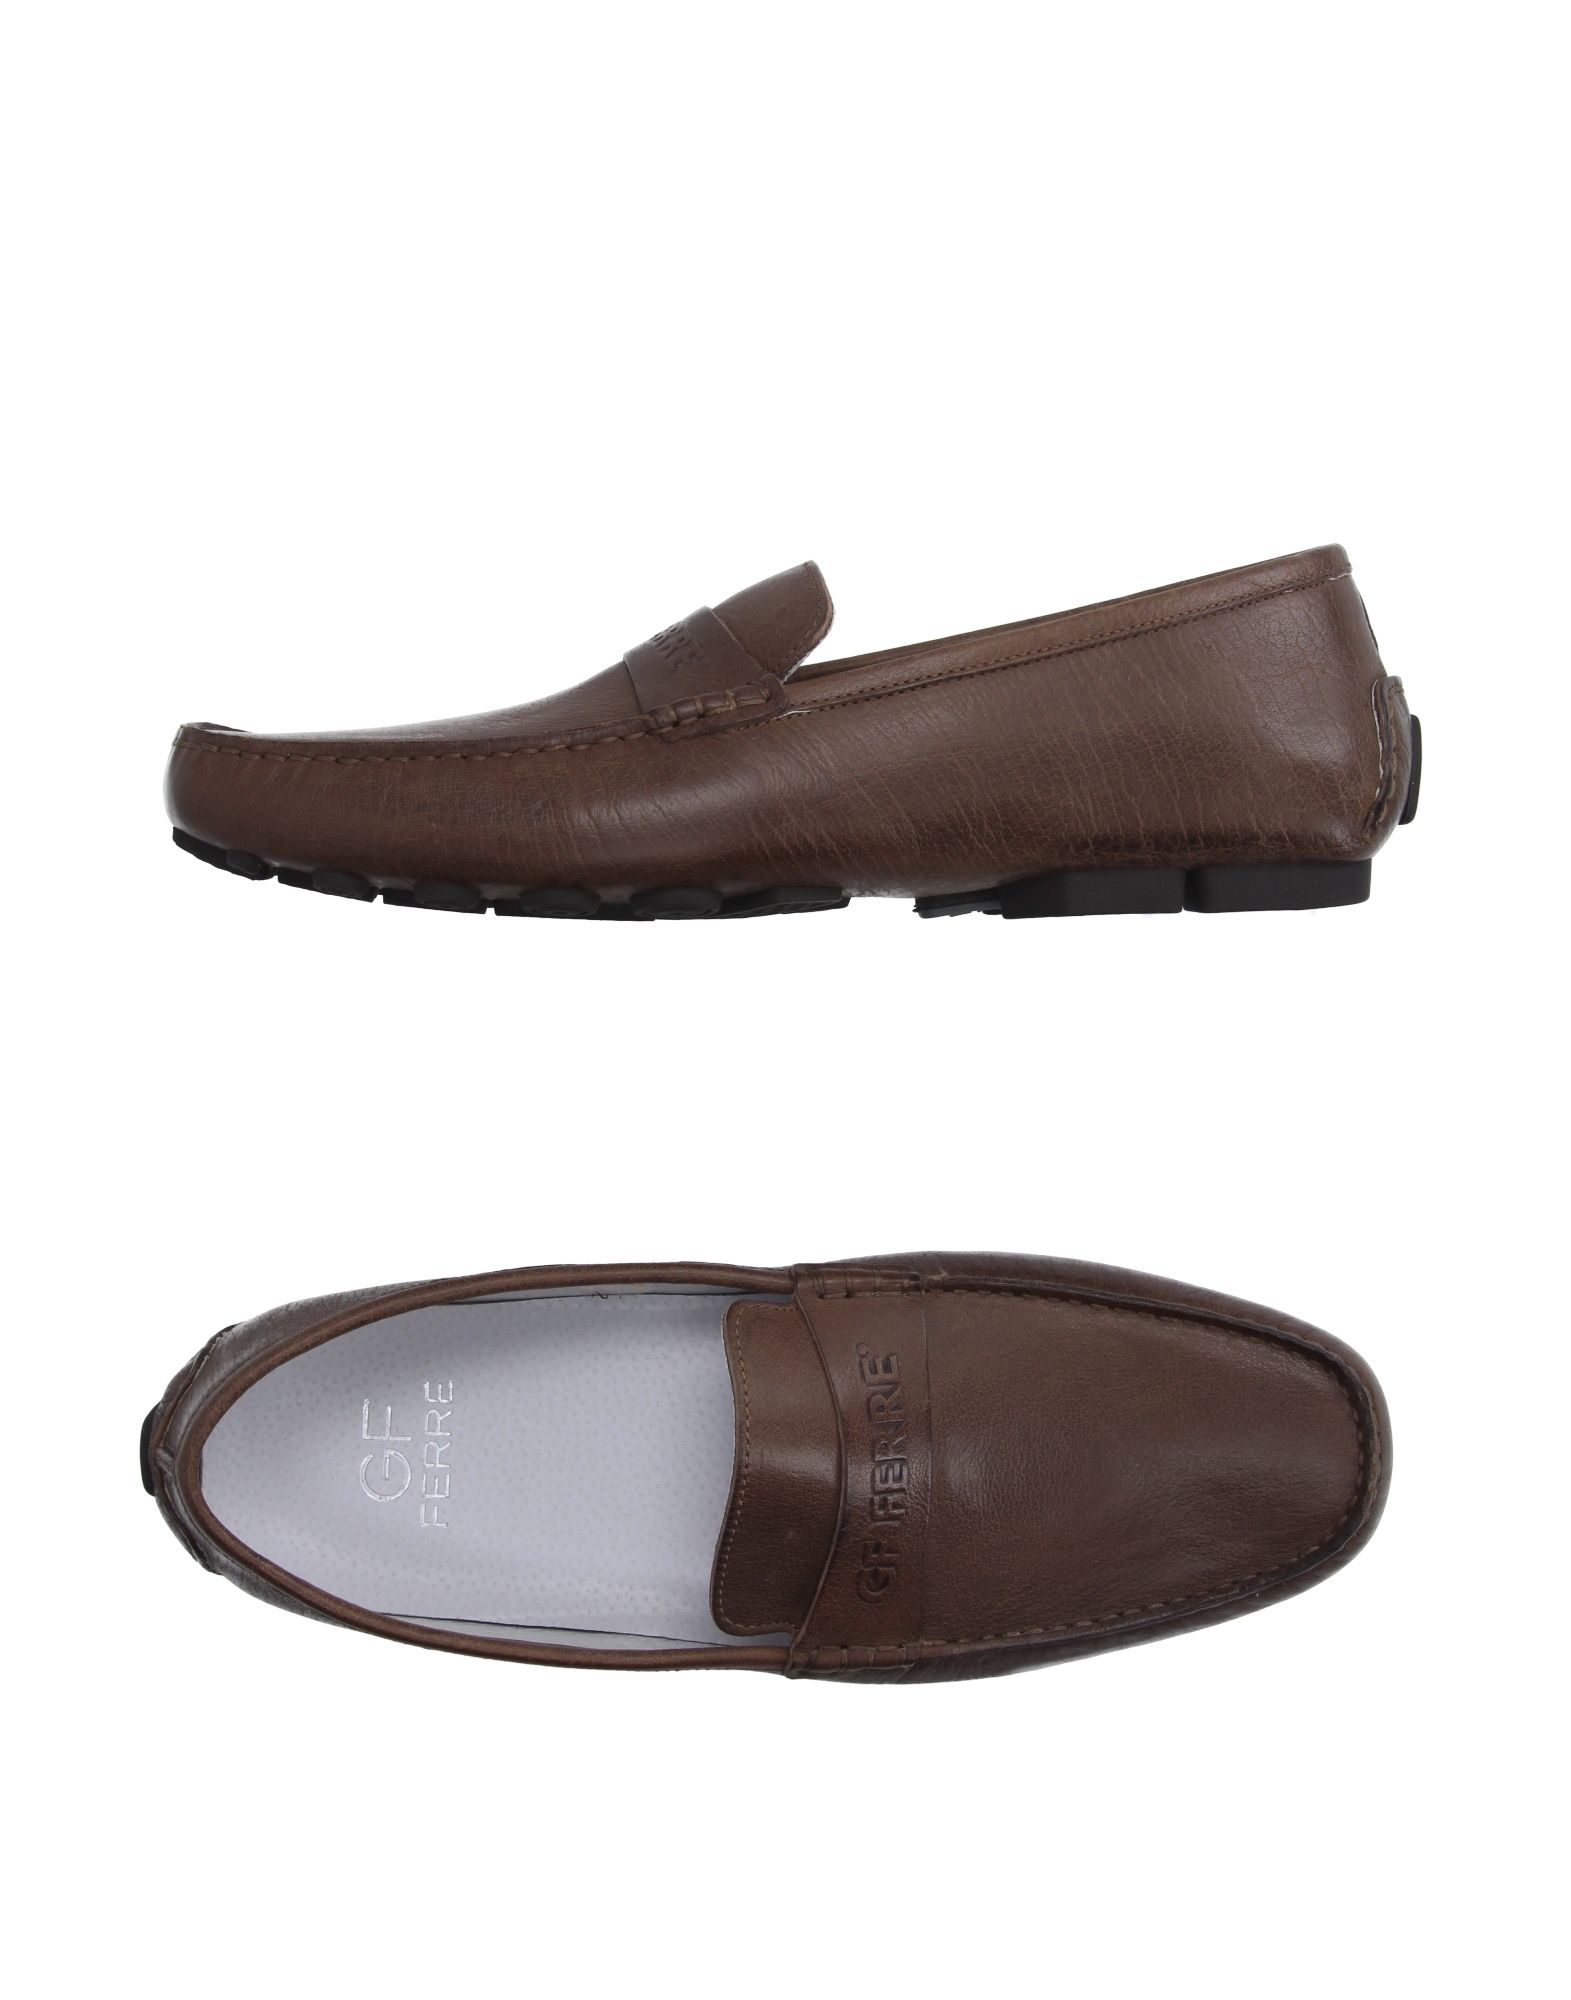 gianfranco ferr 233 moccasins in brown for lyst